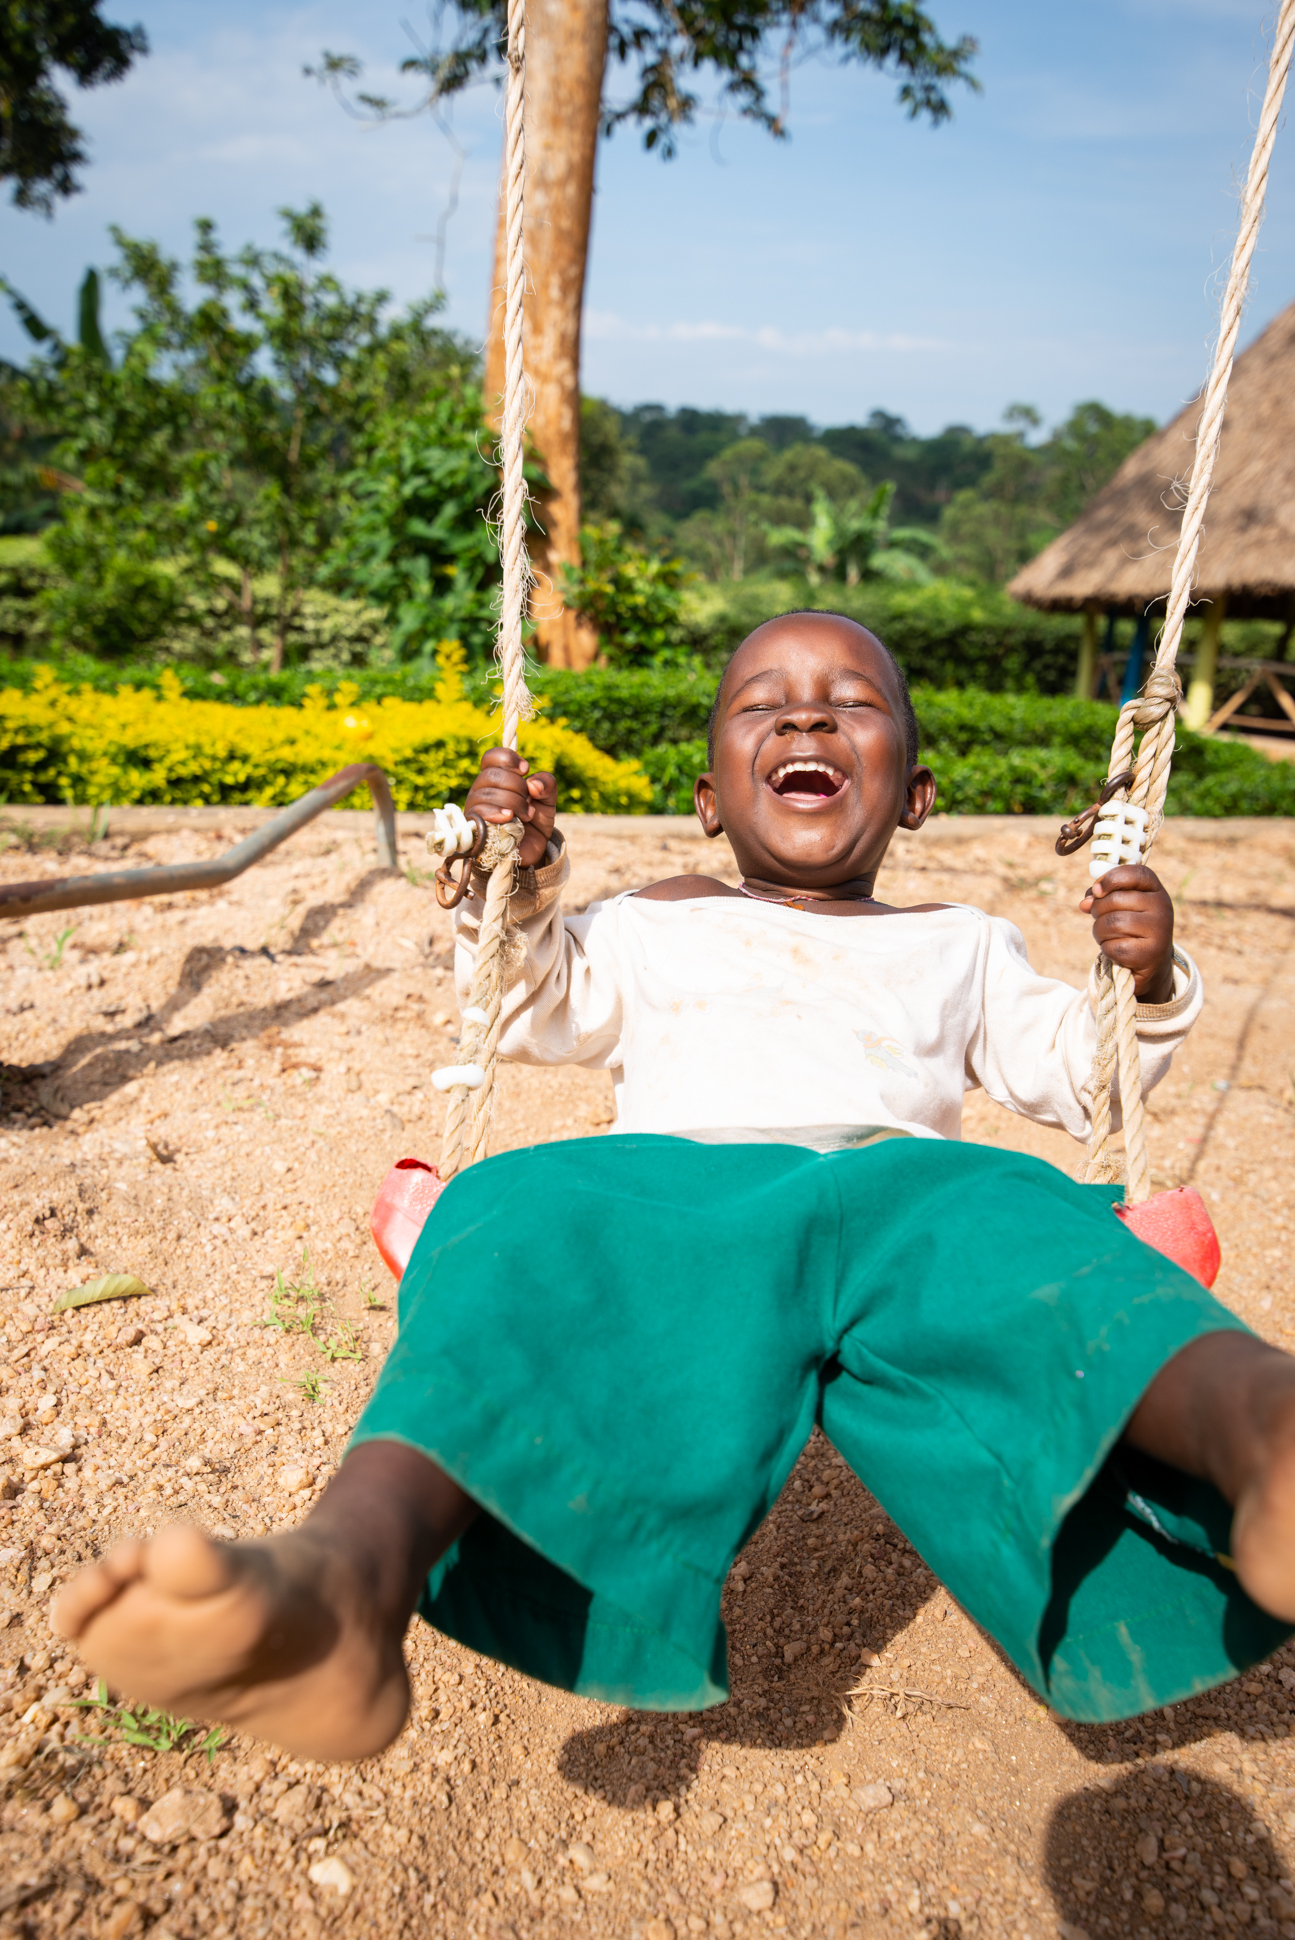 Portrait of an orphanage boy on a swing with a big smile. Ellis and me in Uganda.